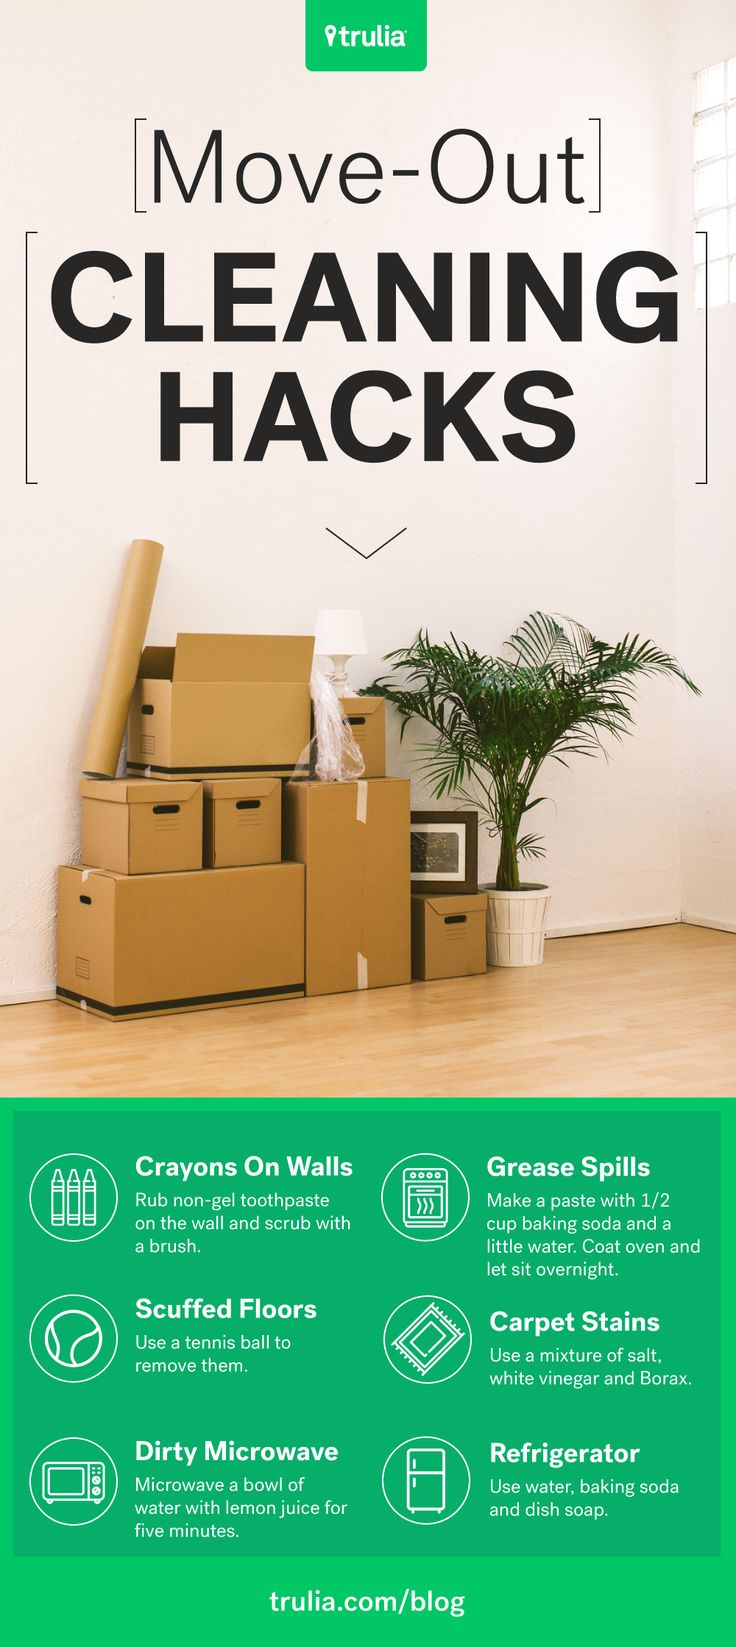 how can i get my security deposit back make your apartment spotless life at home trulia blog clean carpet stainscleaning - How To Remove Stains From Walls